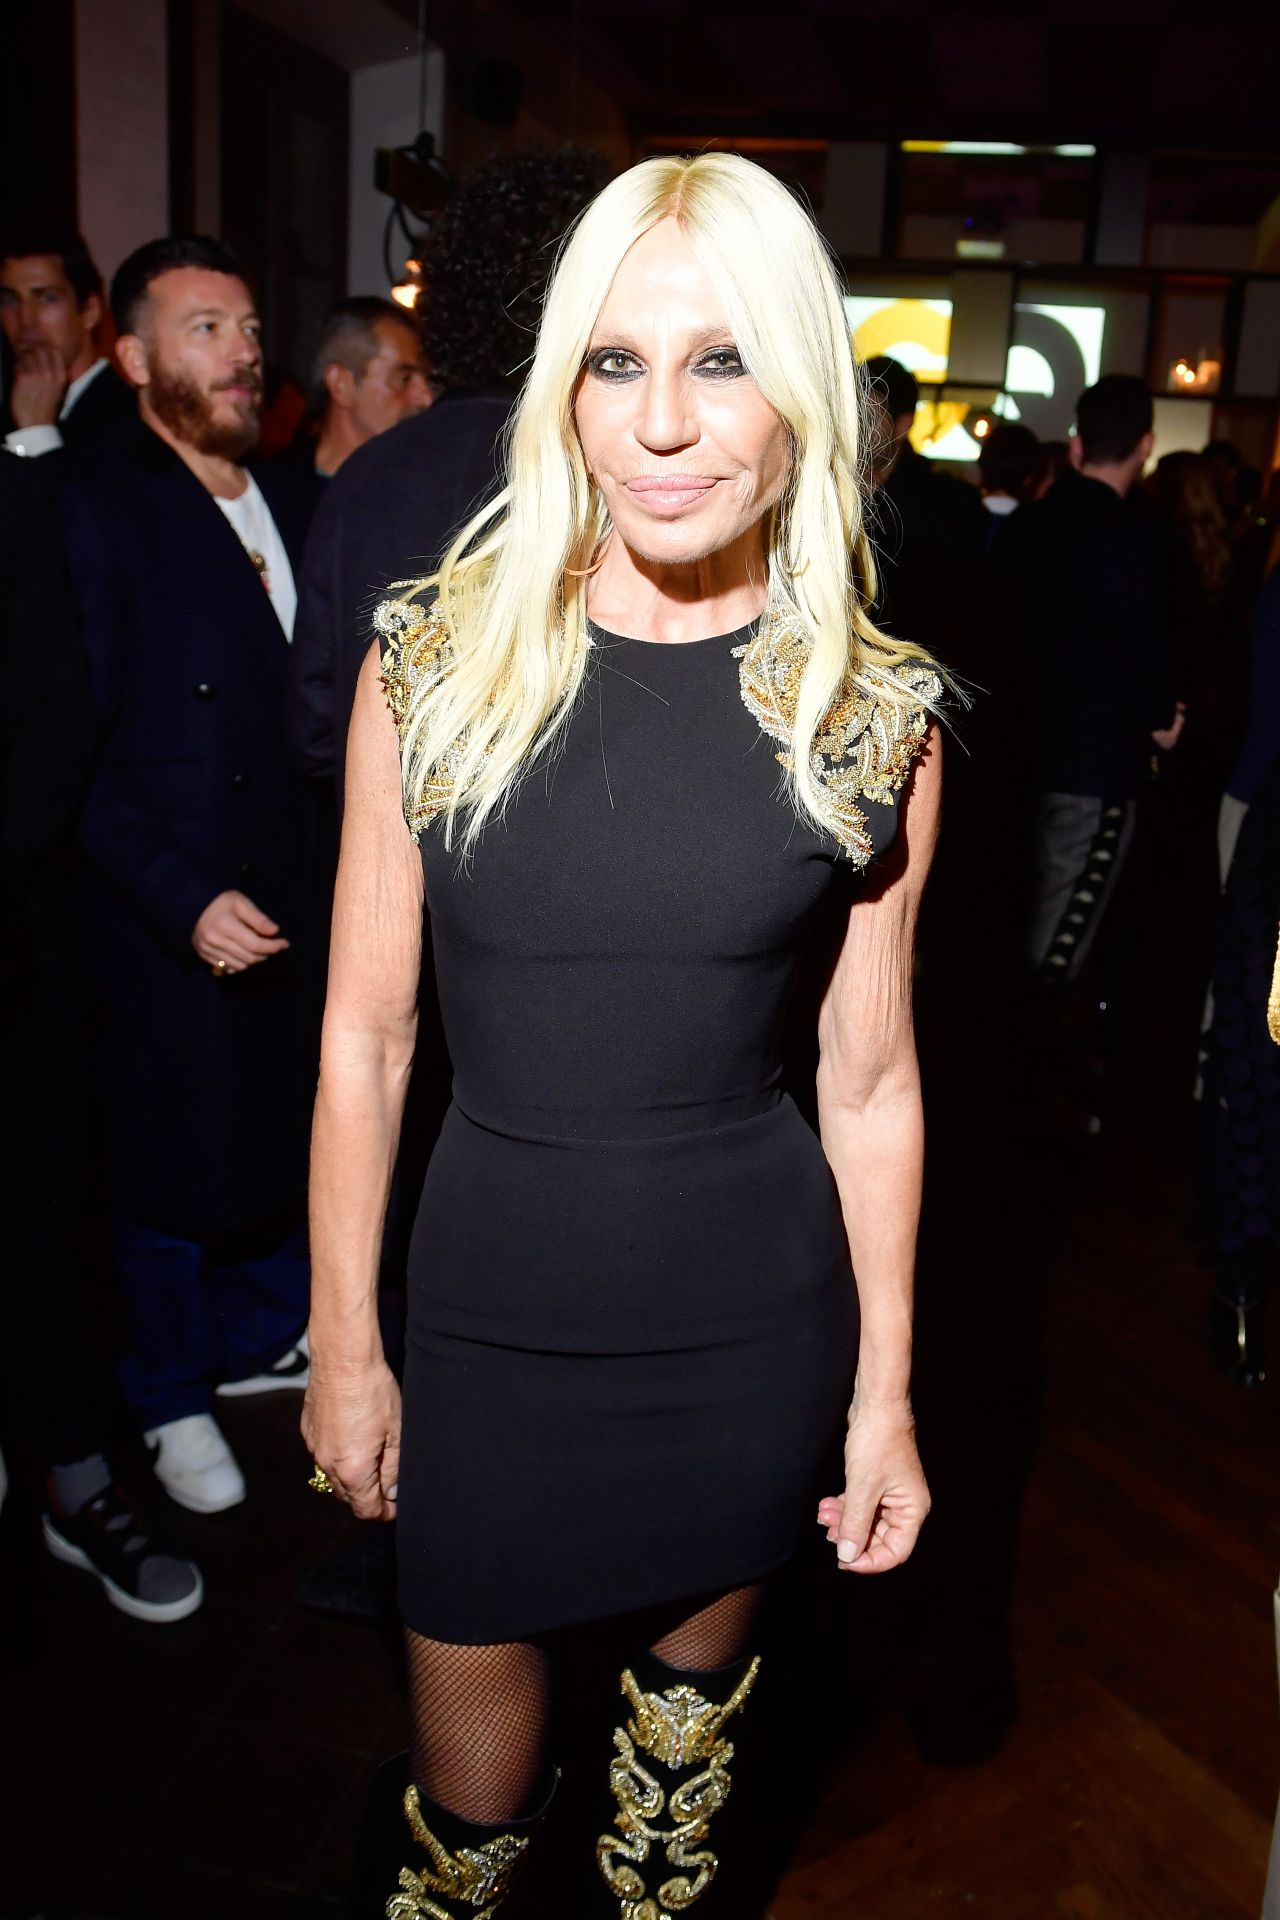 Donatella Versace Gq Milan Cocktail Party In Milan 01 13